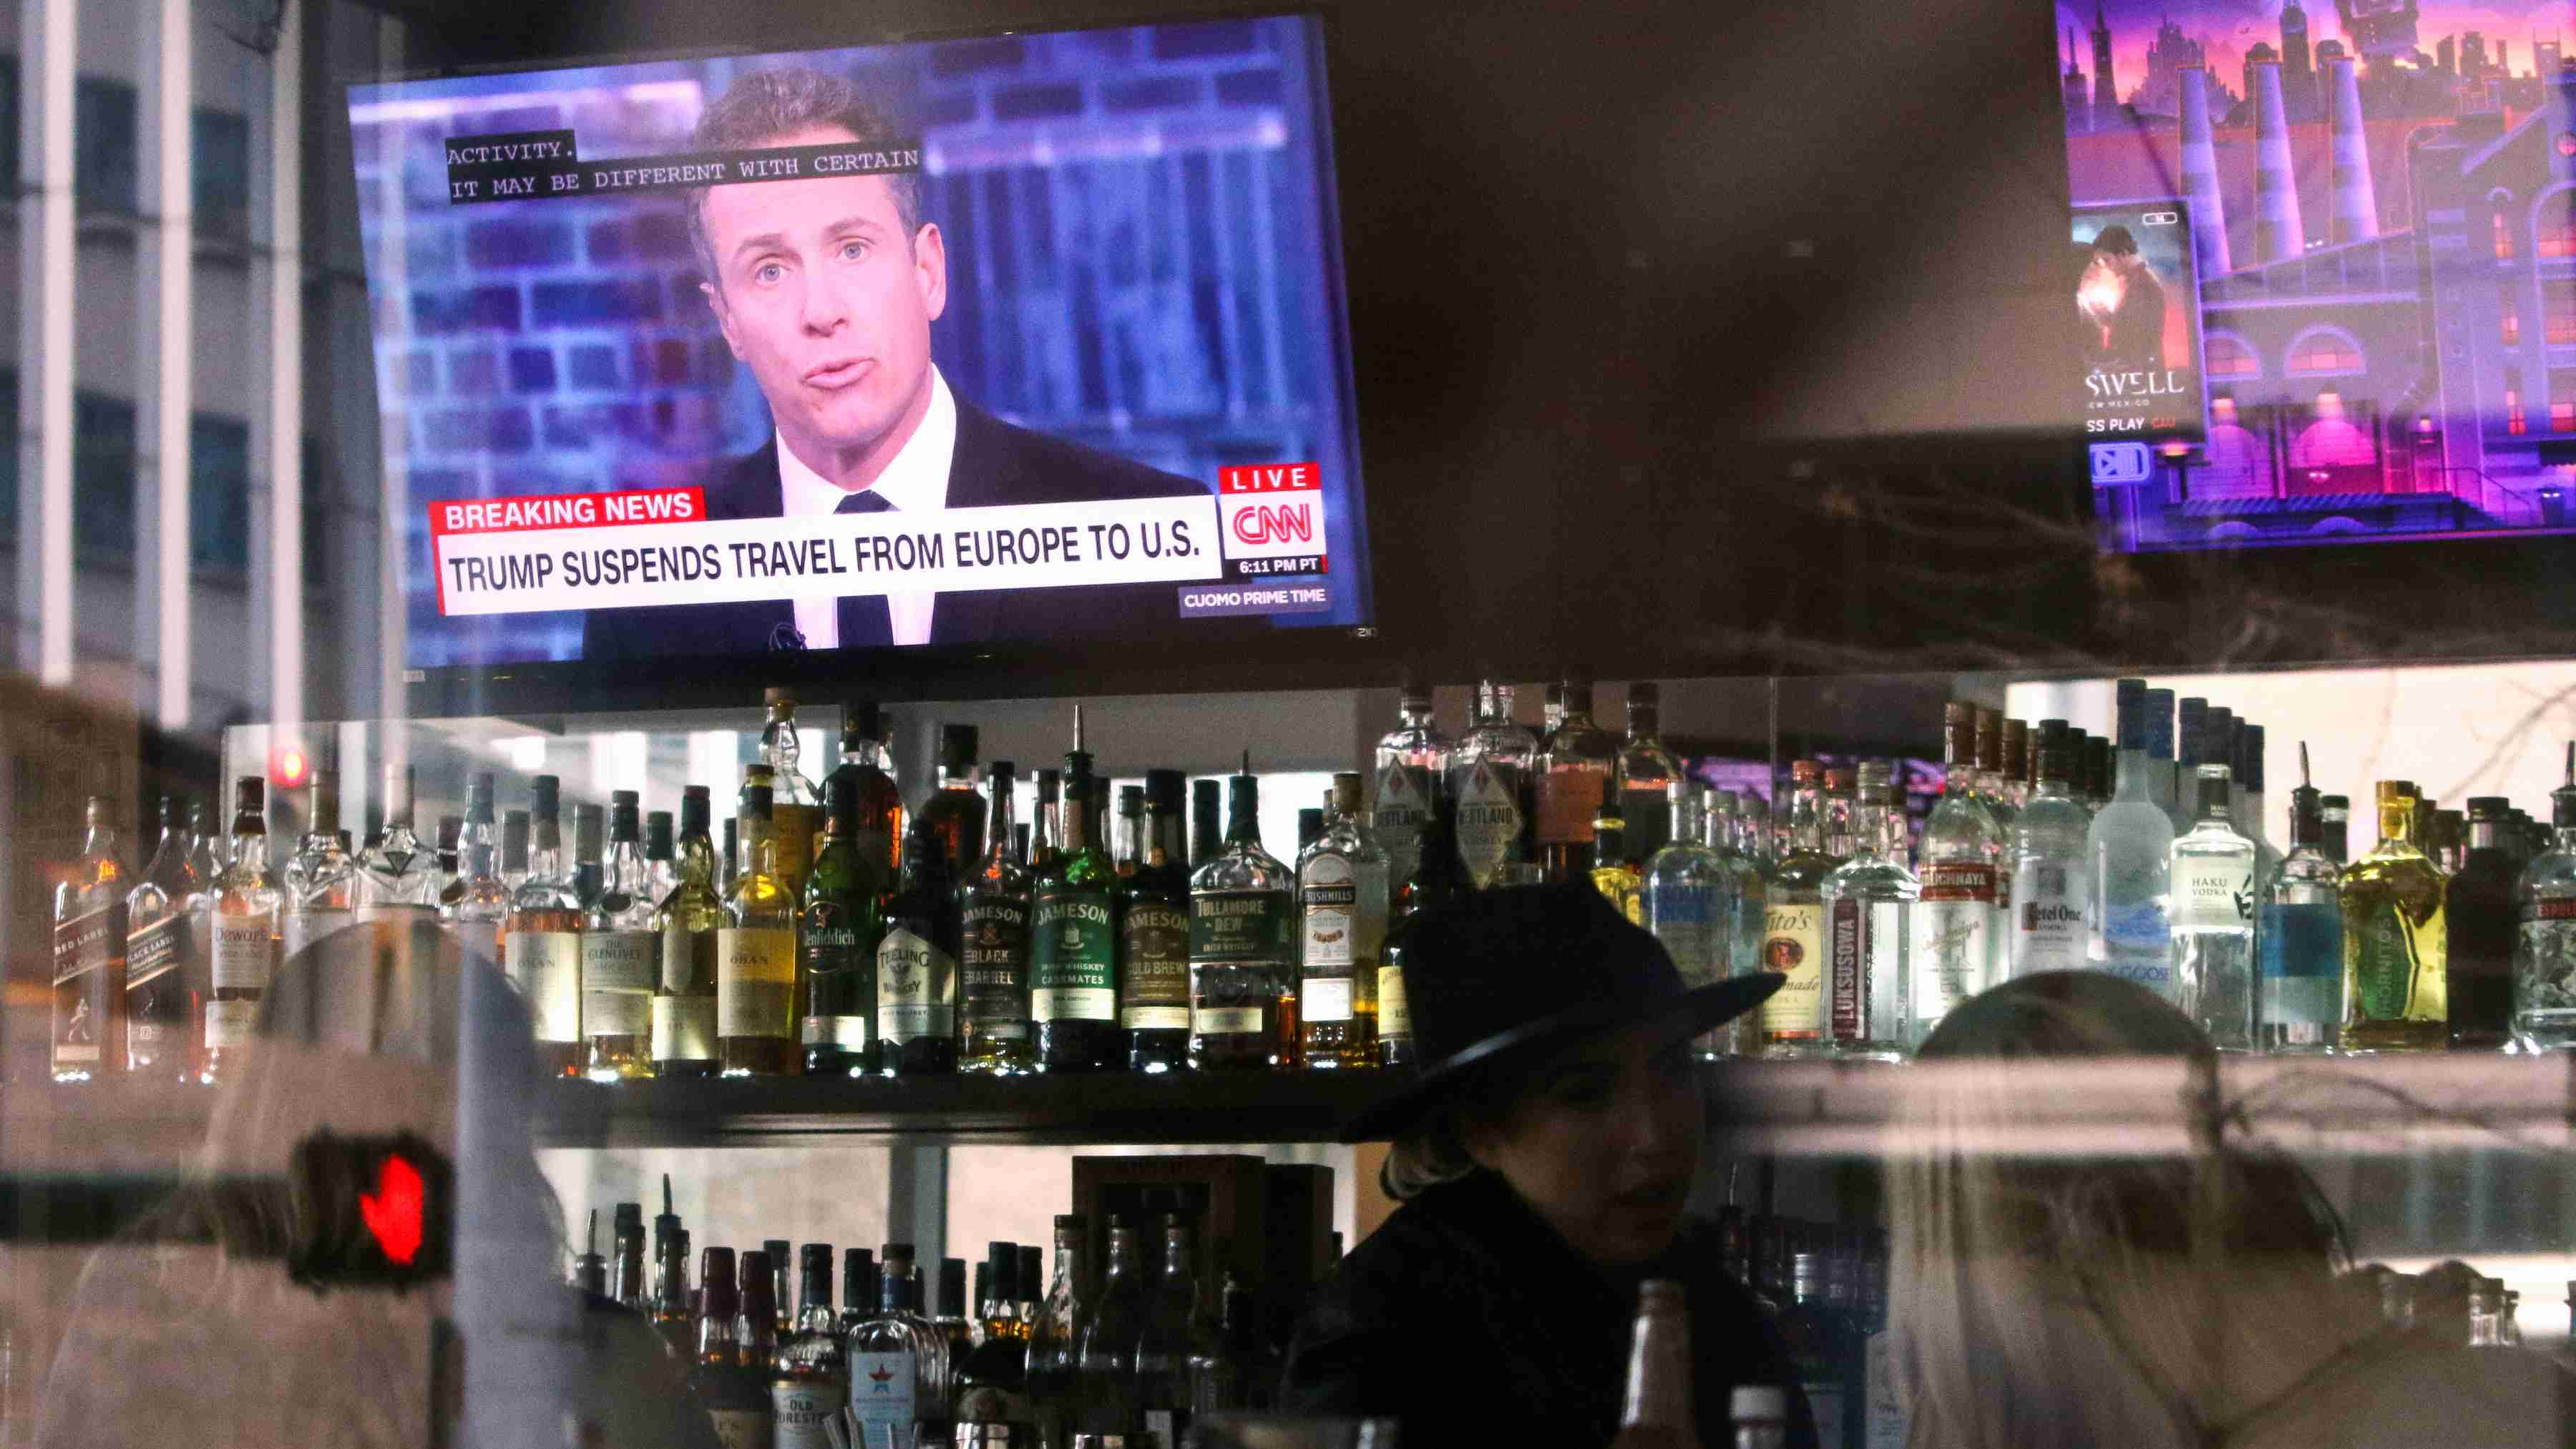 """A CNN headline reading """"Trump Suspends Travel From Europe to U.S."""" is pictured on the television in the bar at A Pizza Mart, in Seattle, Washington, U.S. March 11, 2020. REUTERS/Jason Redmond"""